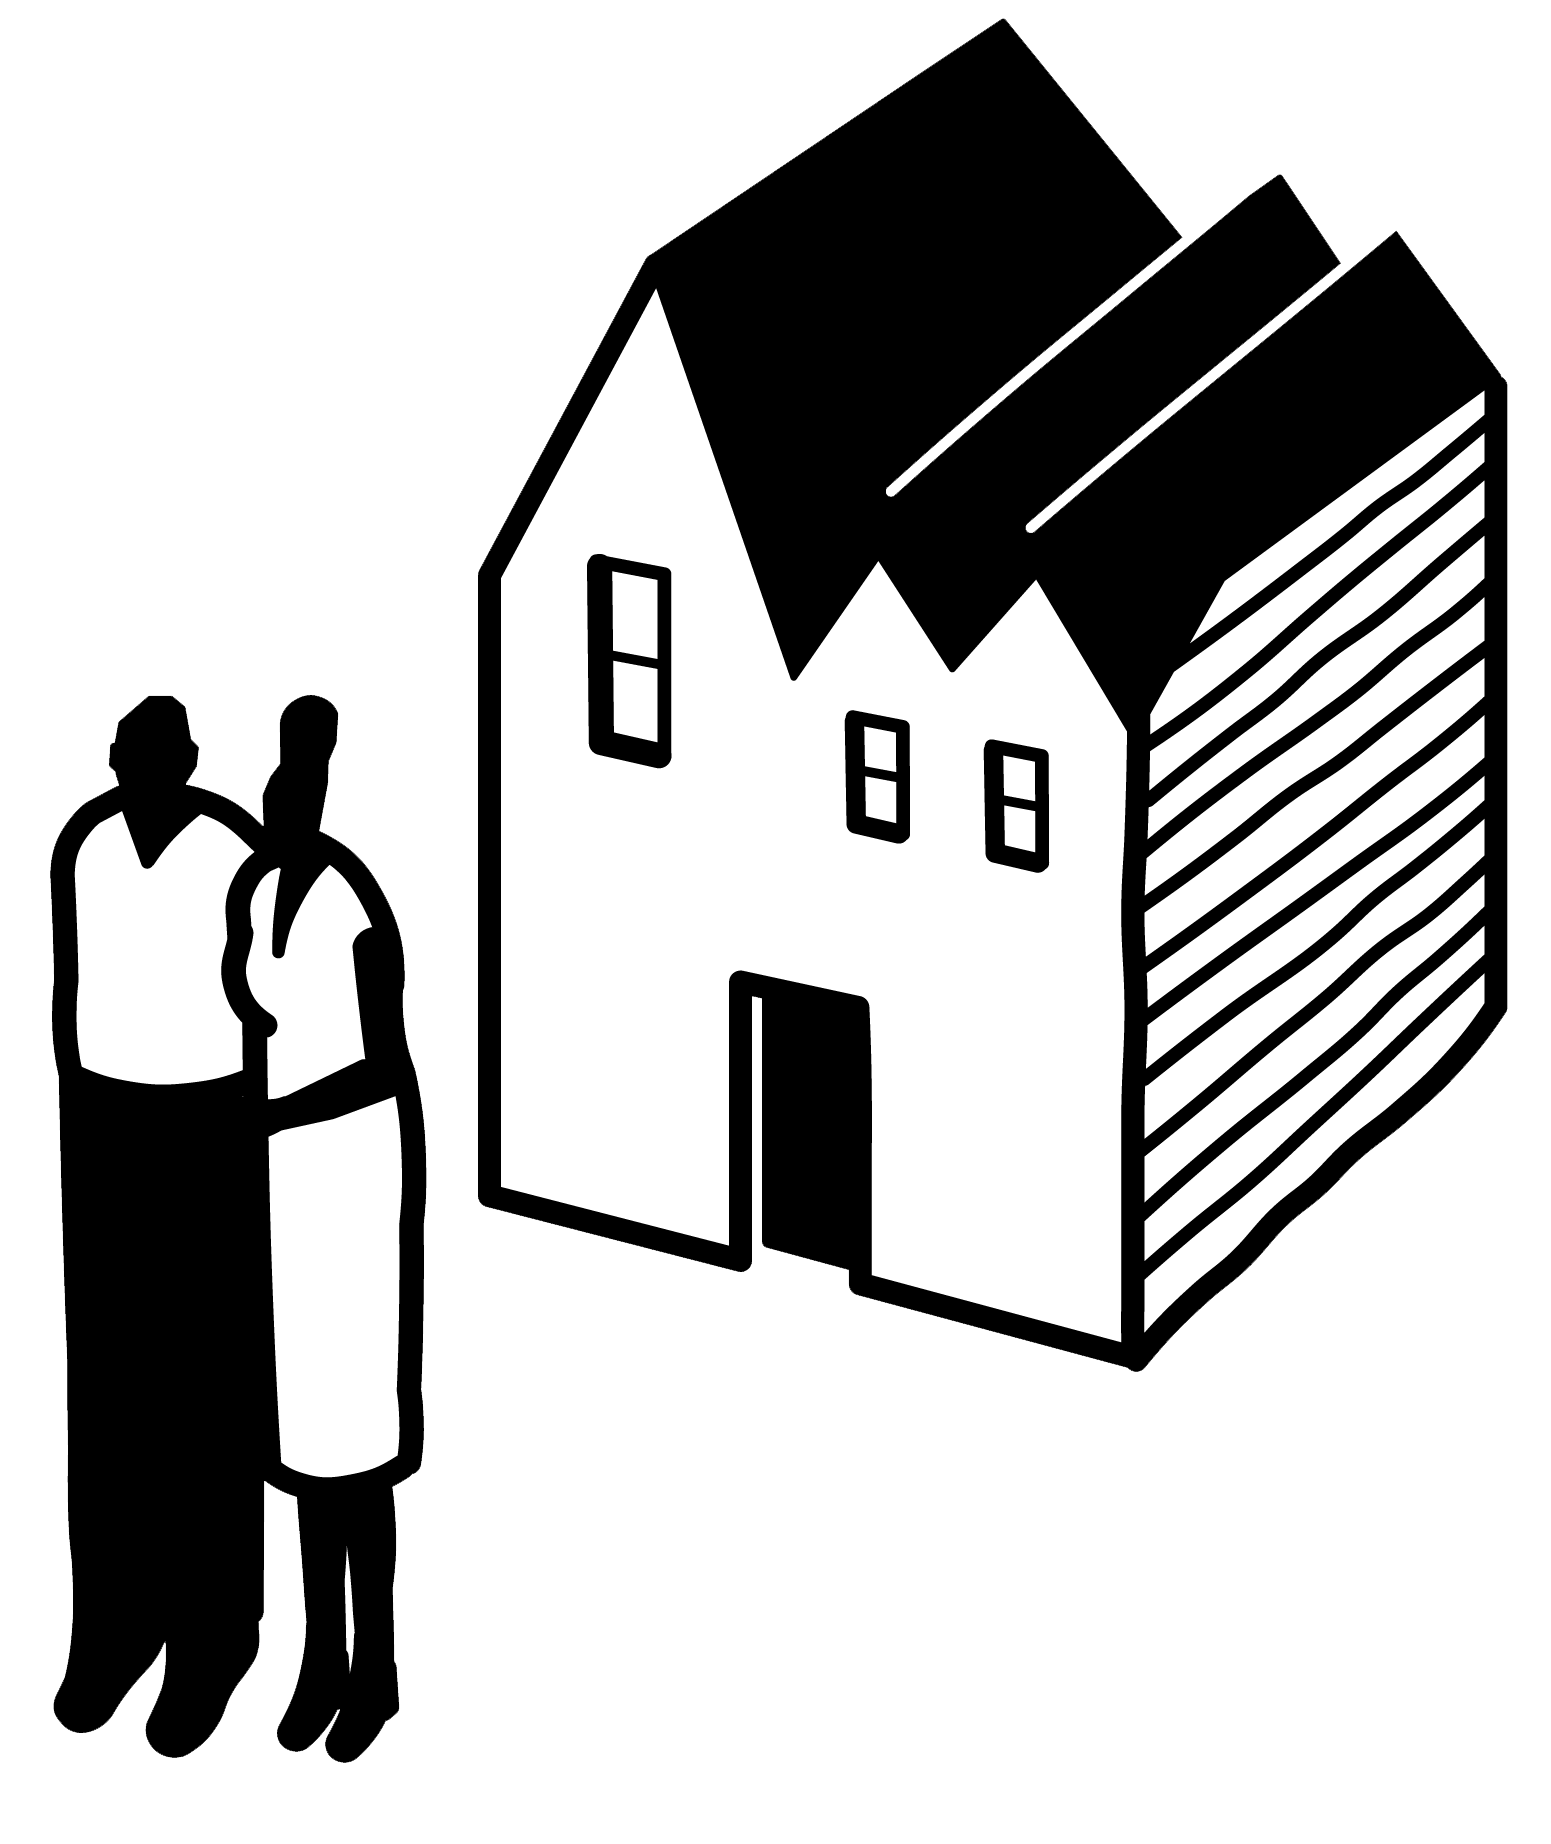 Washington Post Special: Black homeowners in PG County